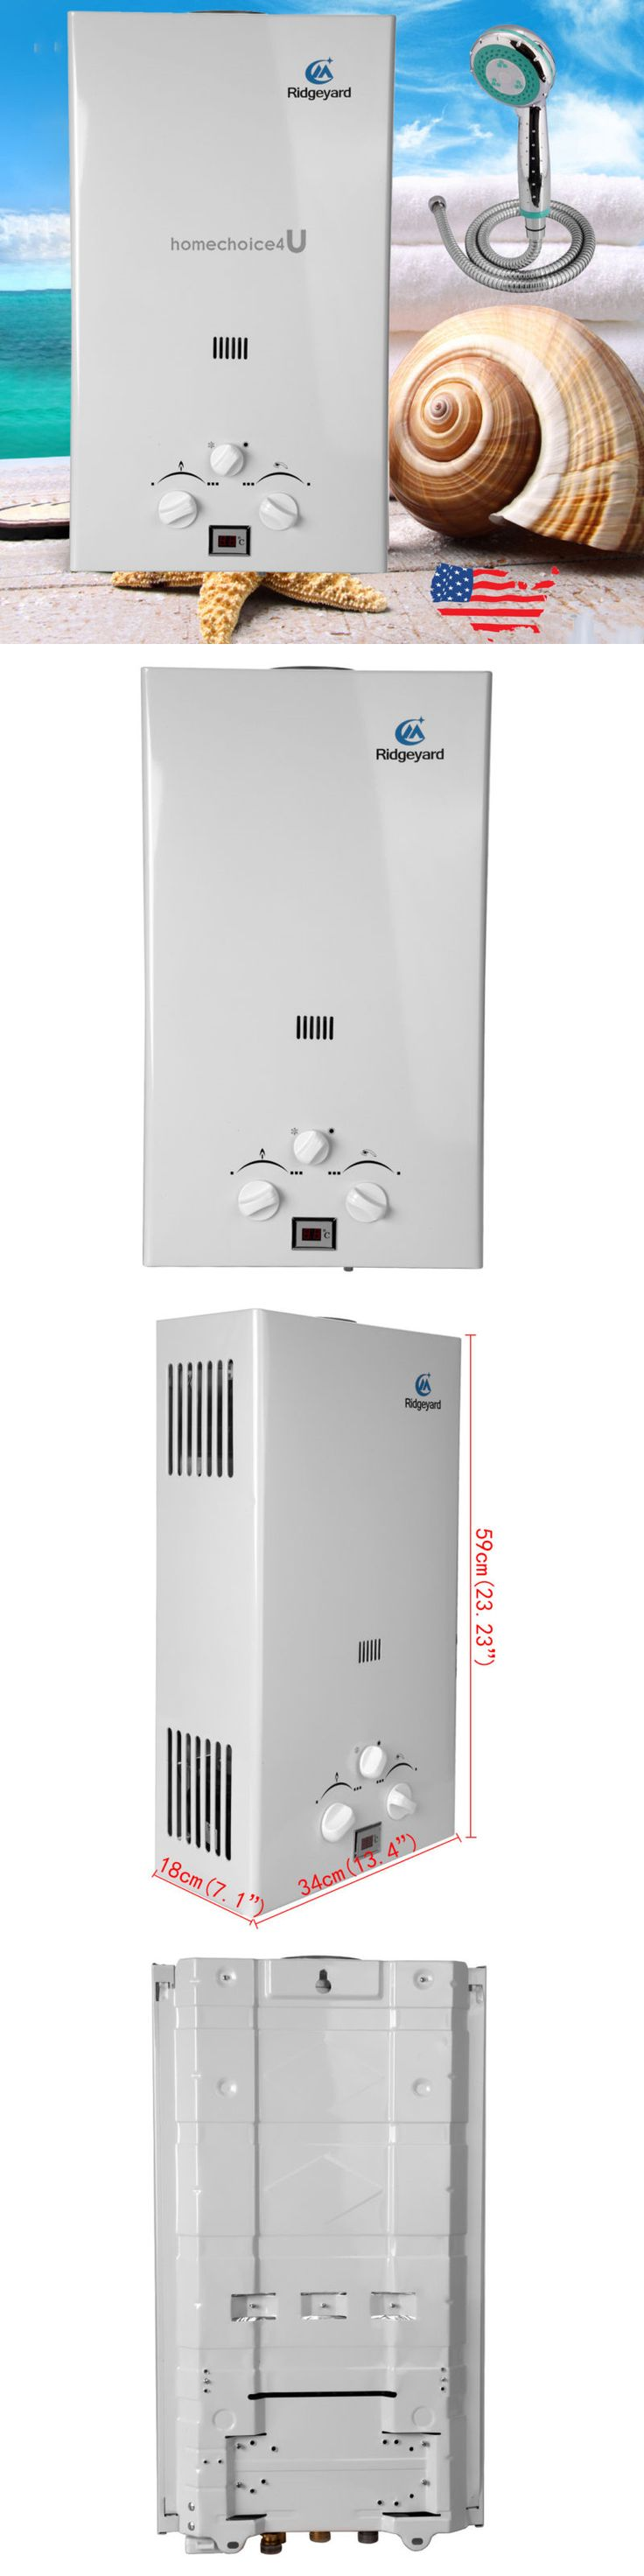 Tankless Water Heaters 115967: 10L Propane Gas Lpg Instant Hot Water Heater Tankless Boiler Open Flue W Shower -> BUY IT NOW ONLY: $109.99 on eBay!